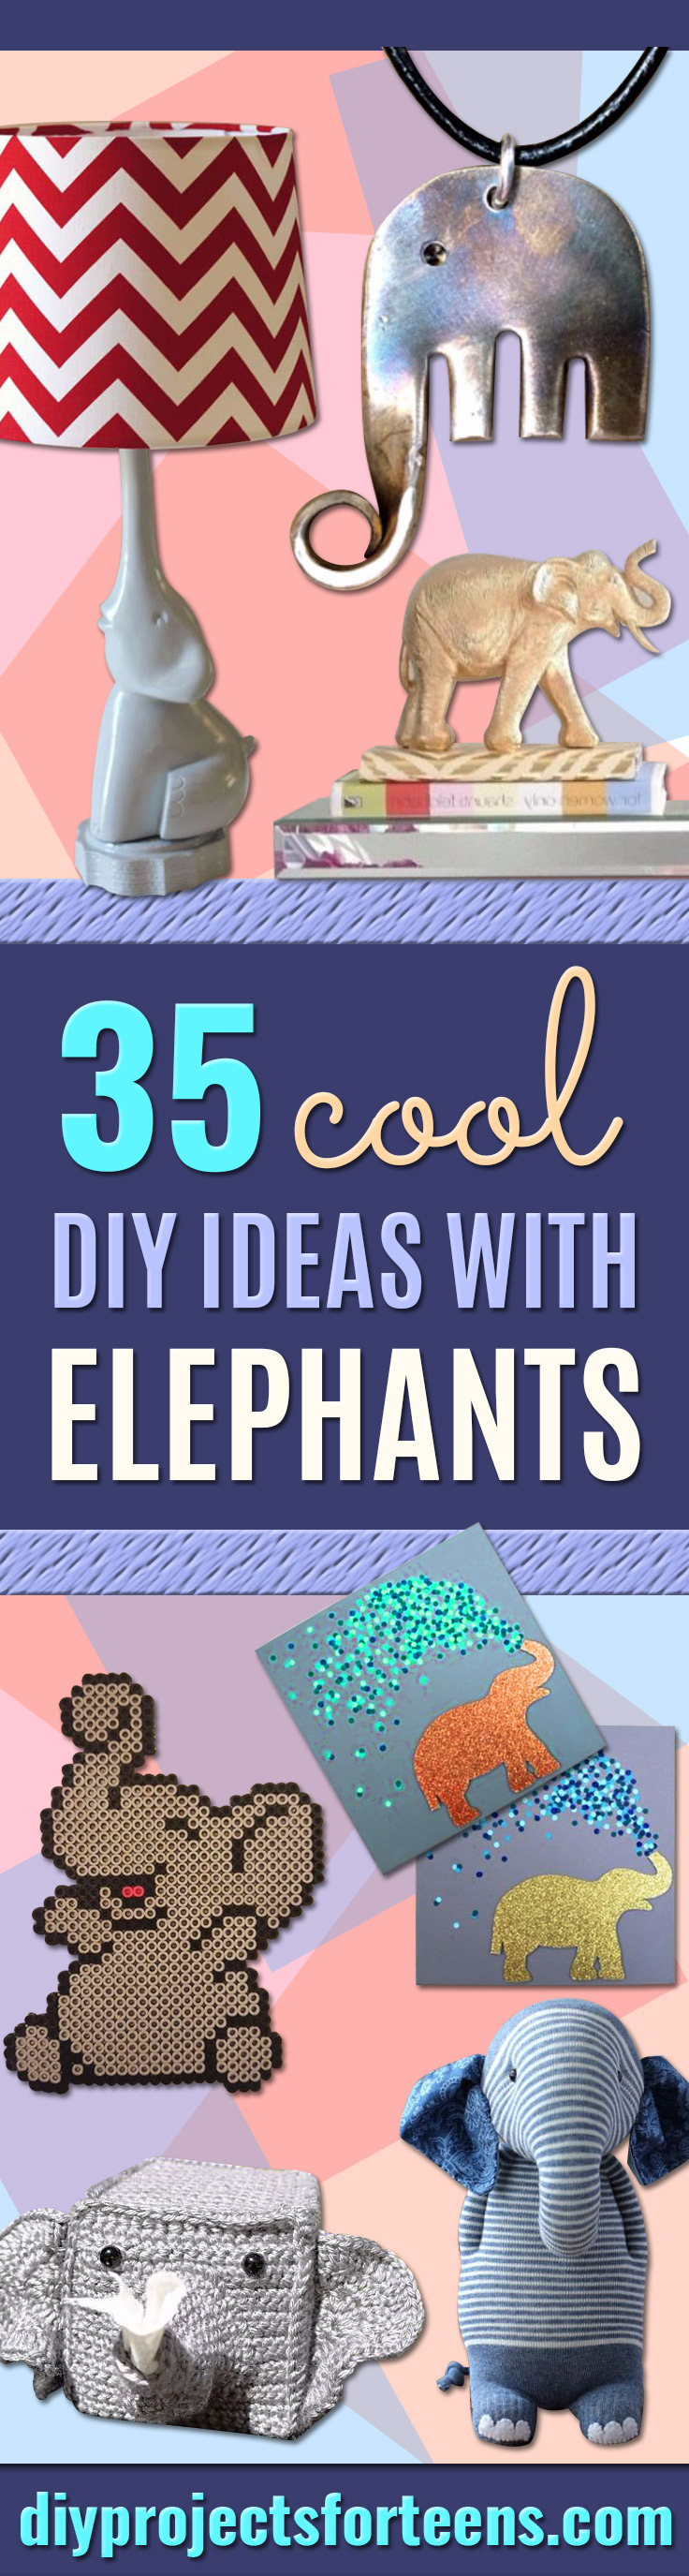 DIY Ideas With Elephants - Easy Wall Art Ideas, Crafts, Jewelry, Arts and Craft Projects for Kids, Teens and Adults- Simple Canvases, Throw Pillows, Cute Paintings for Nurseries, Dollar Store Crafts and Fun Dorm Room and Bedroom Decor - Tutorials for Crafty Ideas Decorated With an Elephant http://diyprojectsforteens.com/diy-ideas-elephants